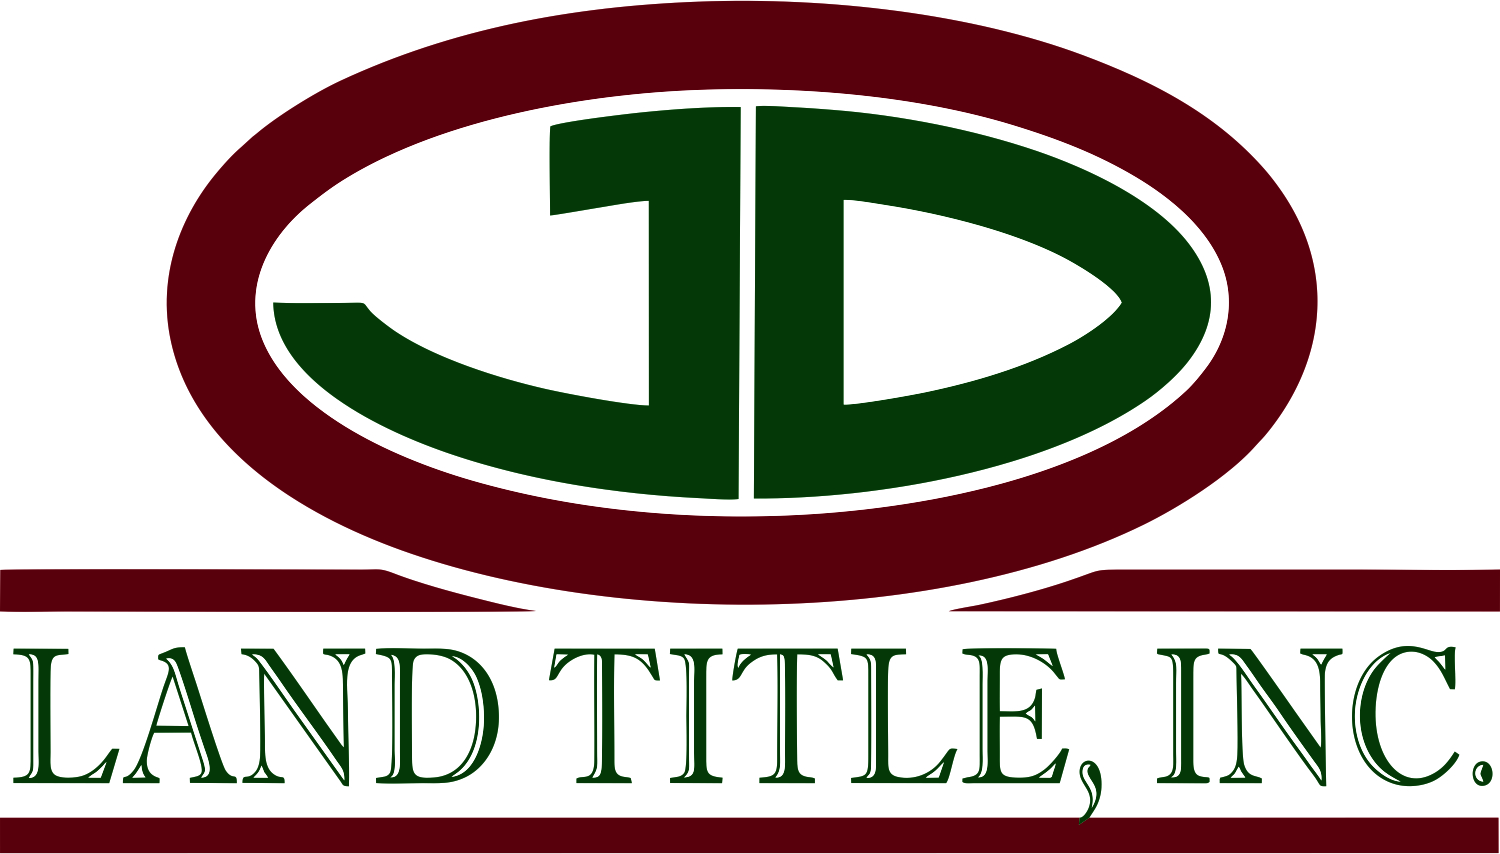 Preferred services jd land title inc has been in business since 2004 and is independently owned and operated jd land title inc and their staff have the education biocorpaavc